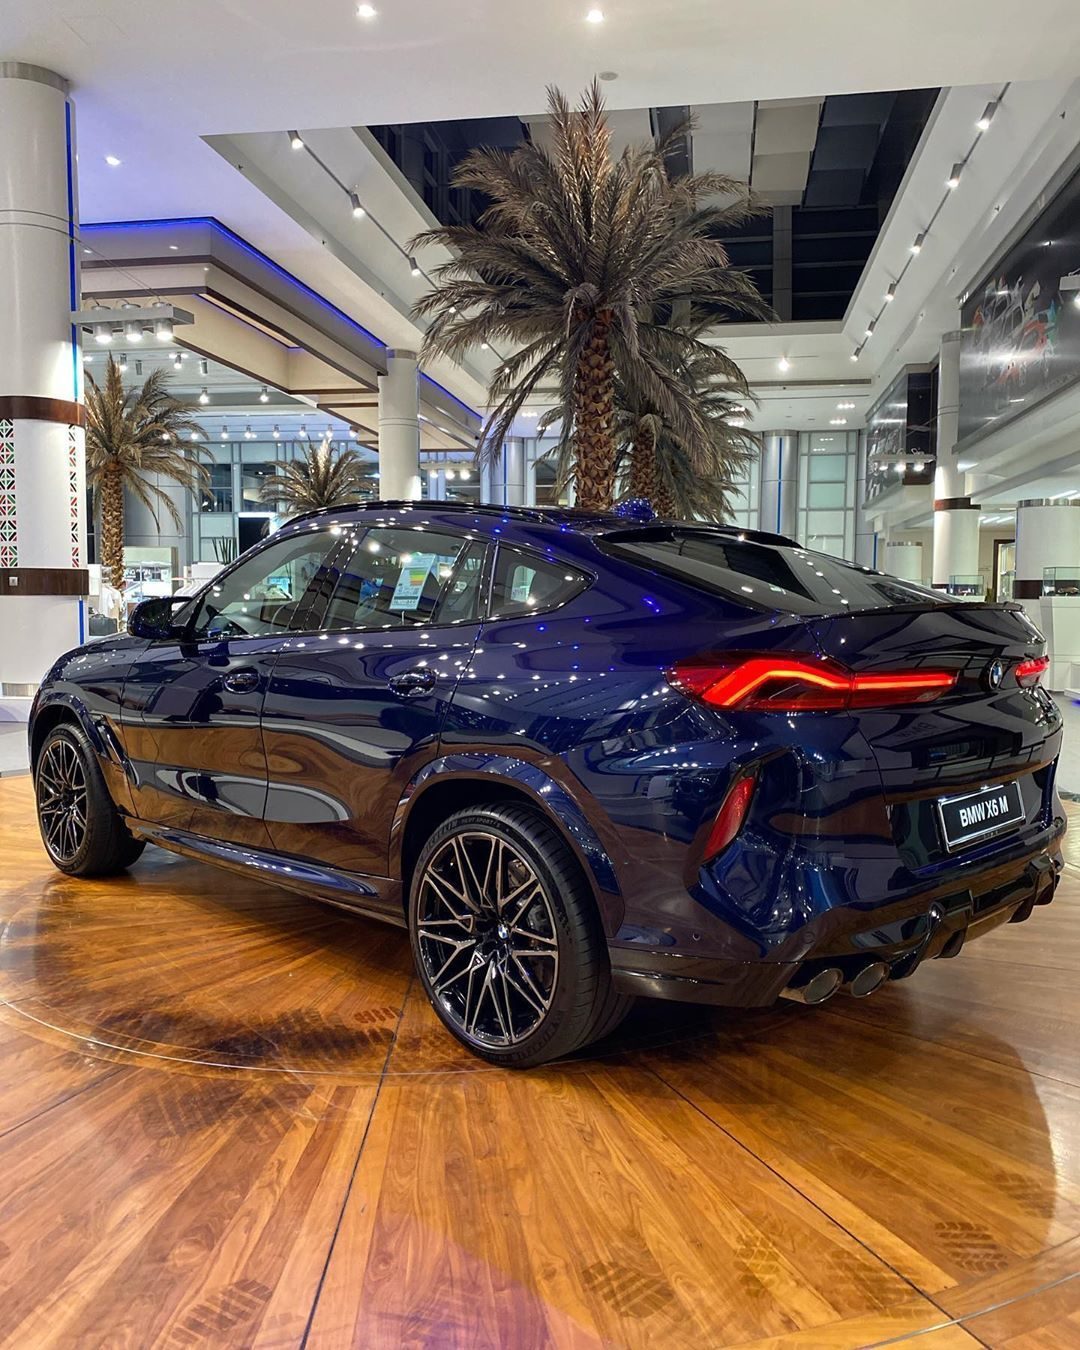 14 2 Tis Vpodoban 93 Komentariv Rami Nasri Bmw Bmw Uae V Instagram Bmw X6m Competition Tanzanite Blue V8 Twinpower Turbo S63 In 2020 Bmw Bmw X6 Competition